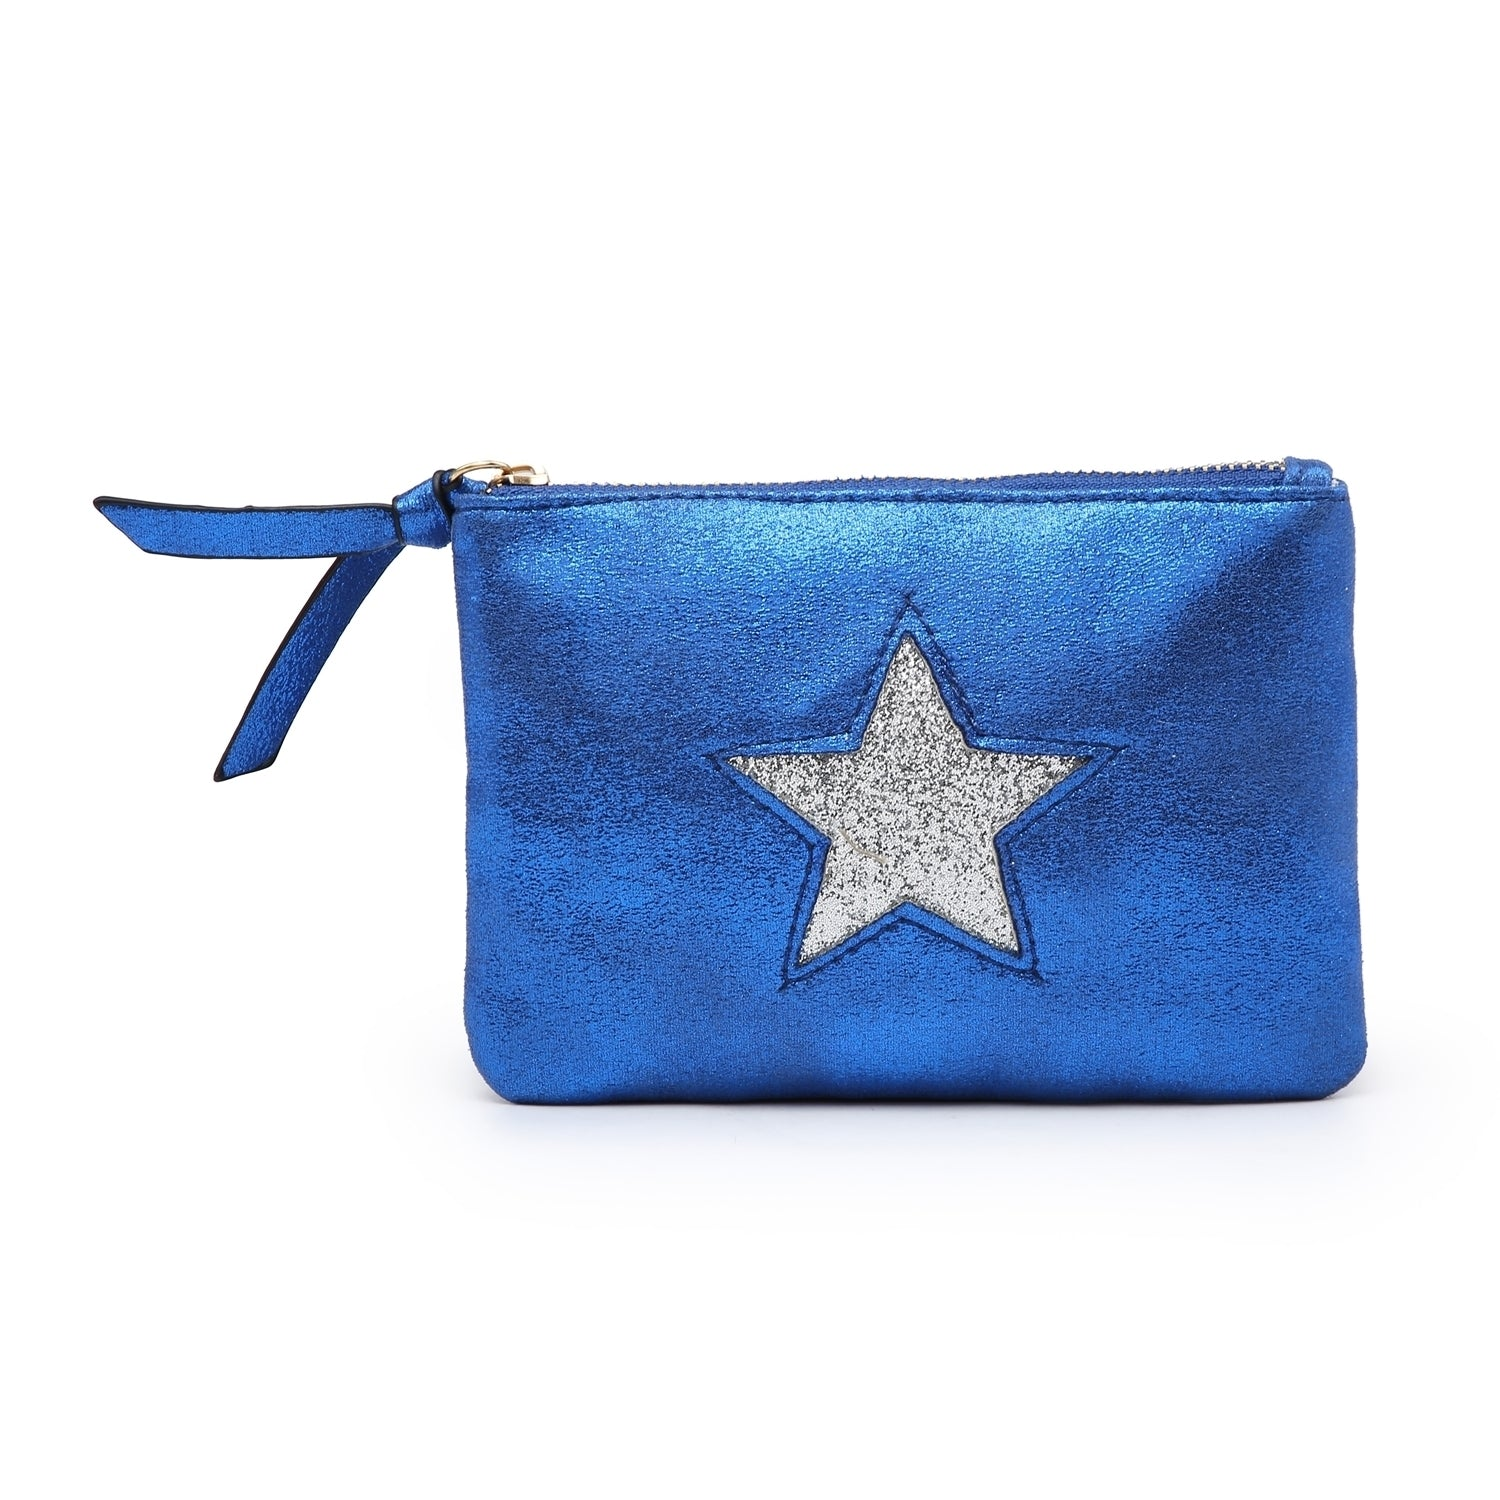 Medium Star Purse | Electric Blue